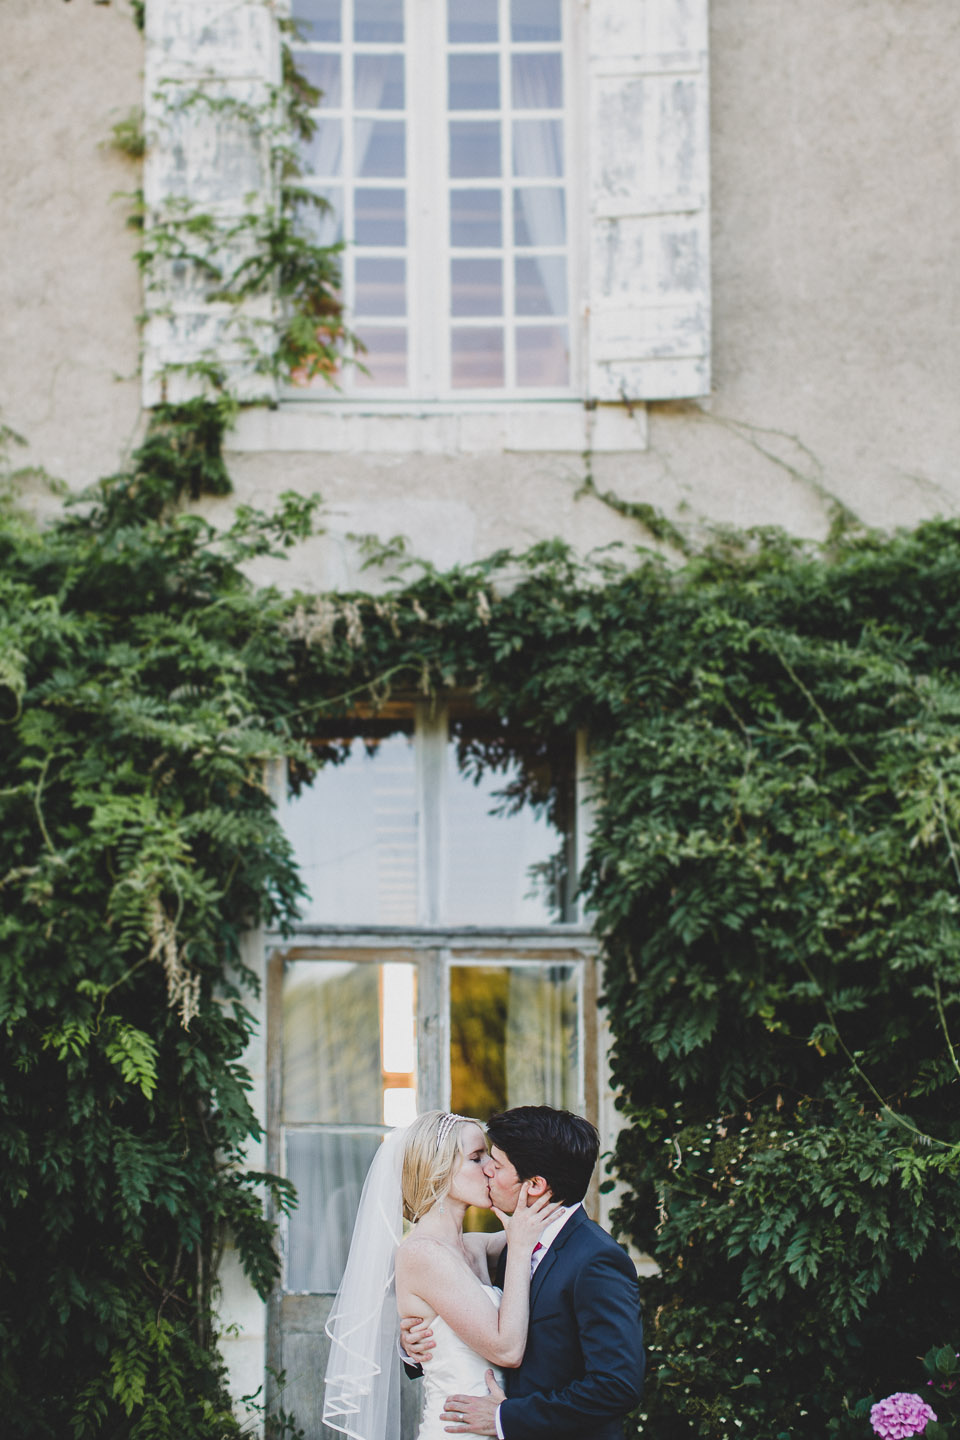 Weding_French_American_Loire_Chateau_Chambiers_JeanLaurentGaudy_082